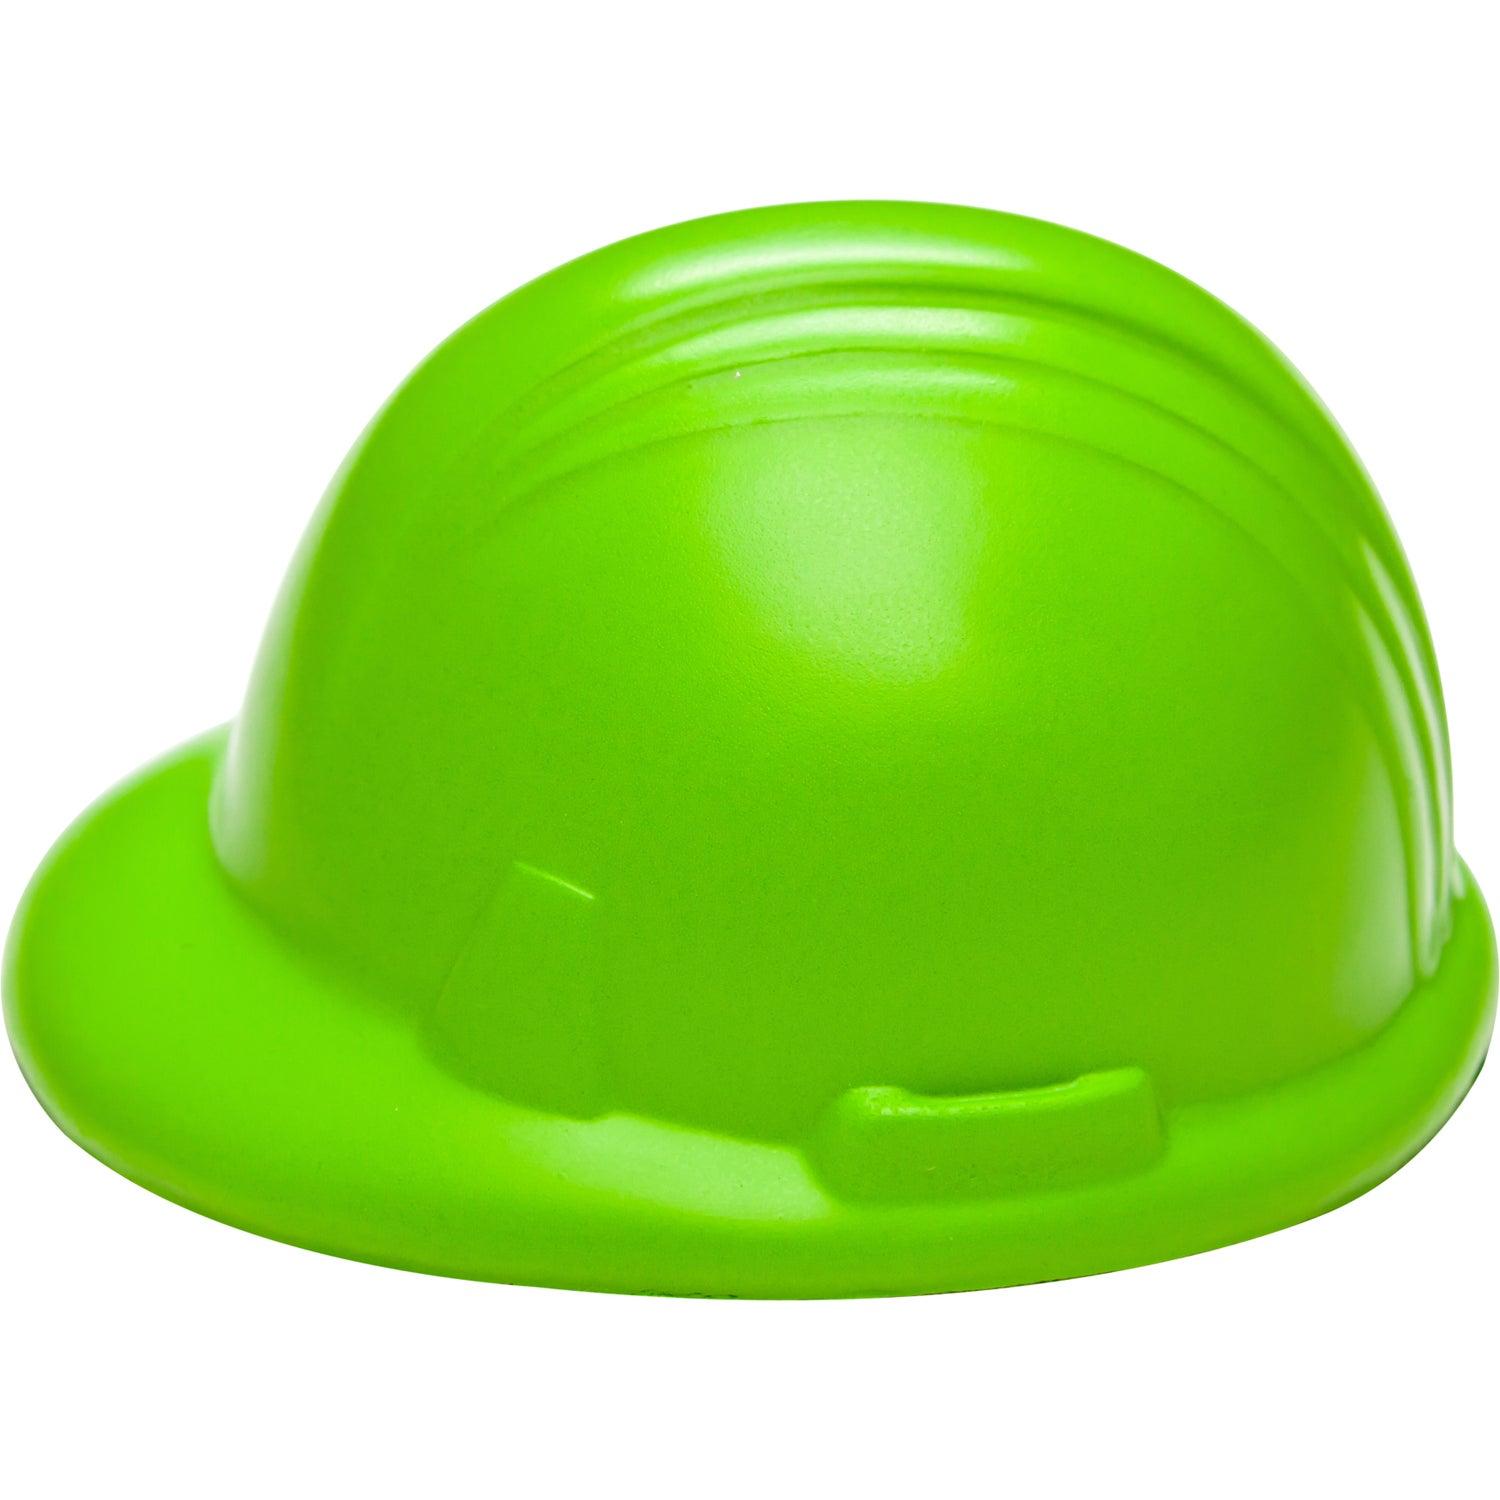 1ff41f7a5f7 Hard Hat Stress Ball